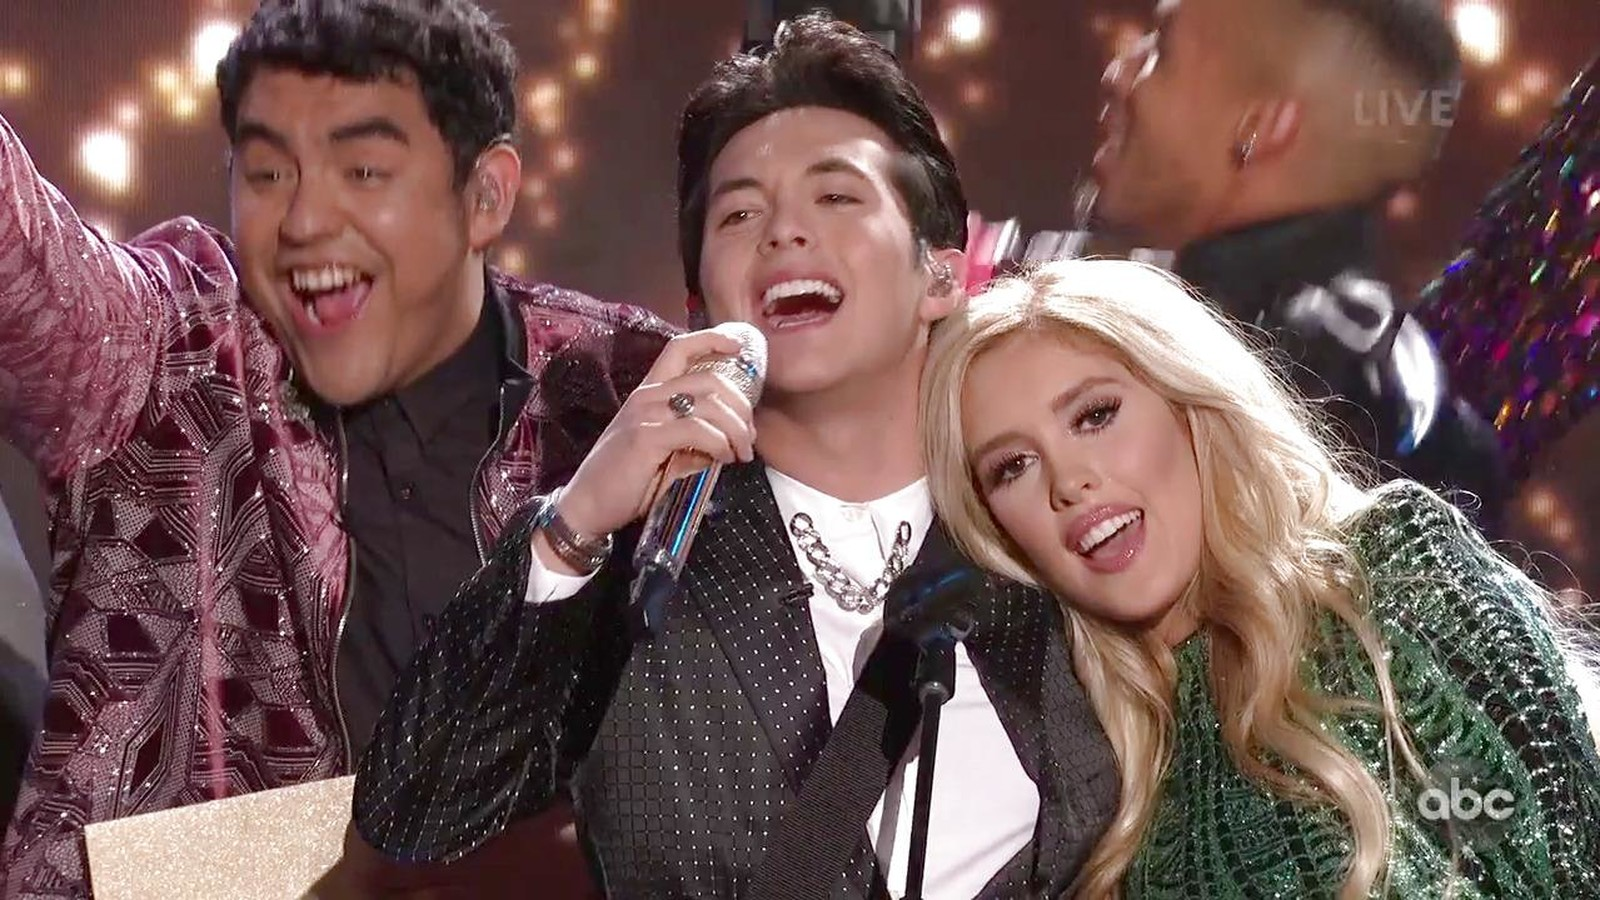 who are the top 10 american idol 2020